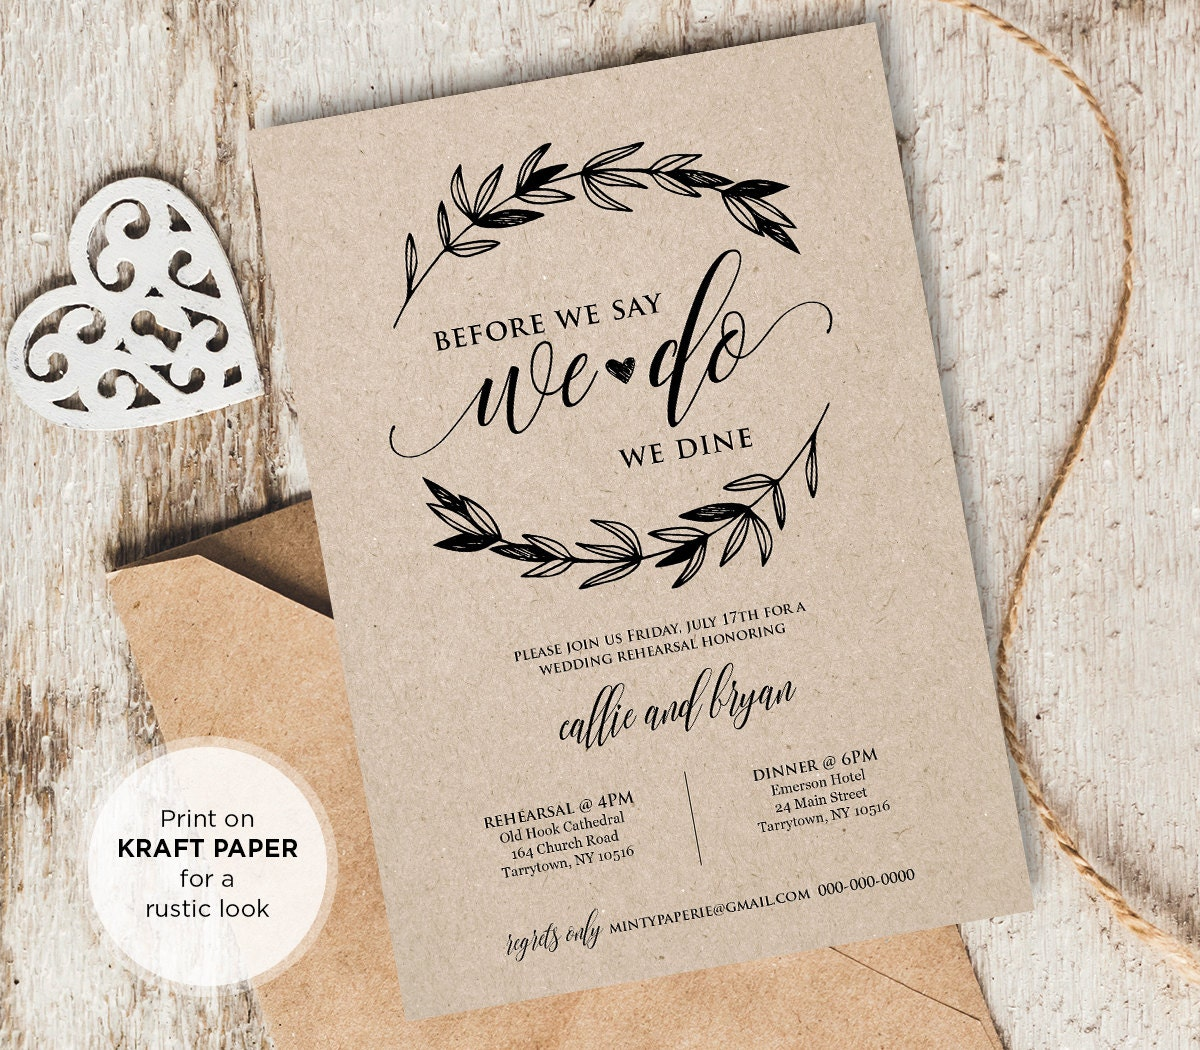 Wedding Rehearsal Invitations Templates: Rustic Wedding Rehearsal Invitation INSTANT DOWNLOAD